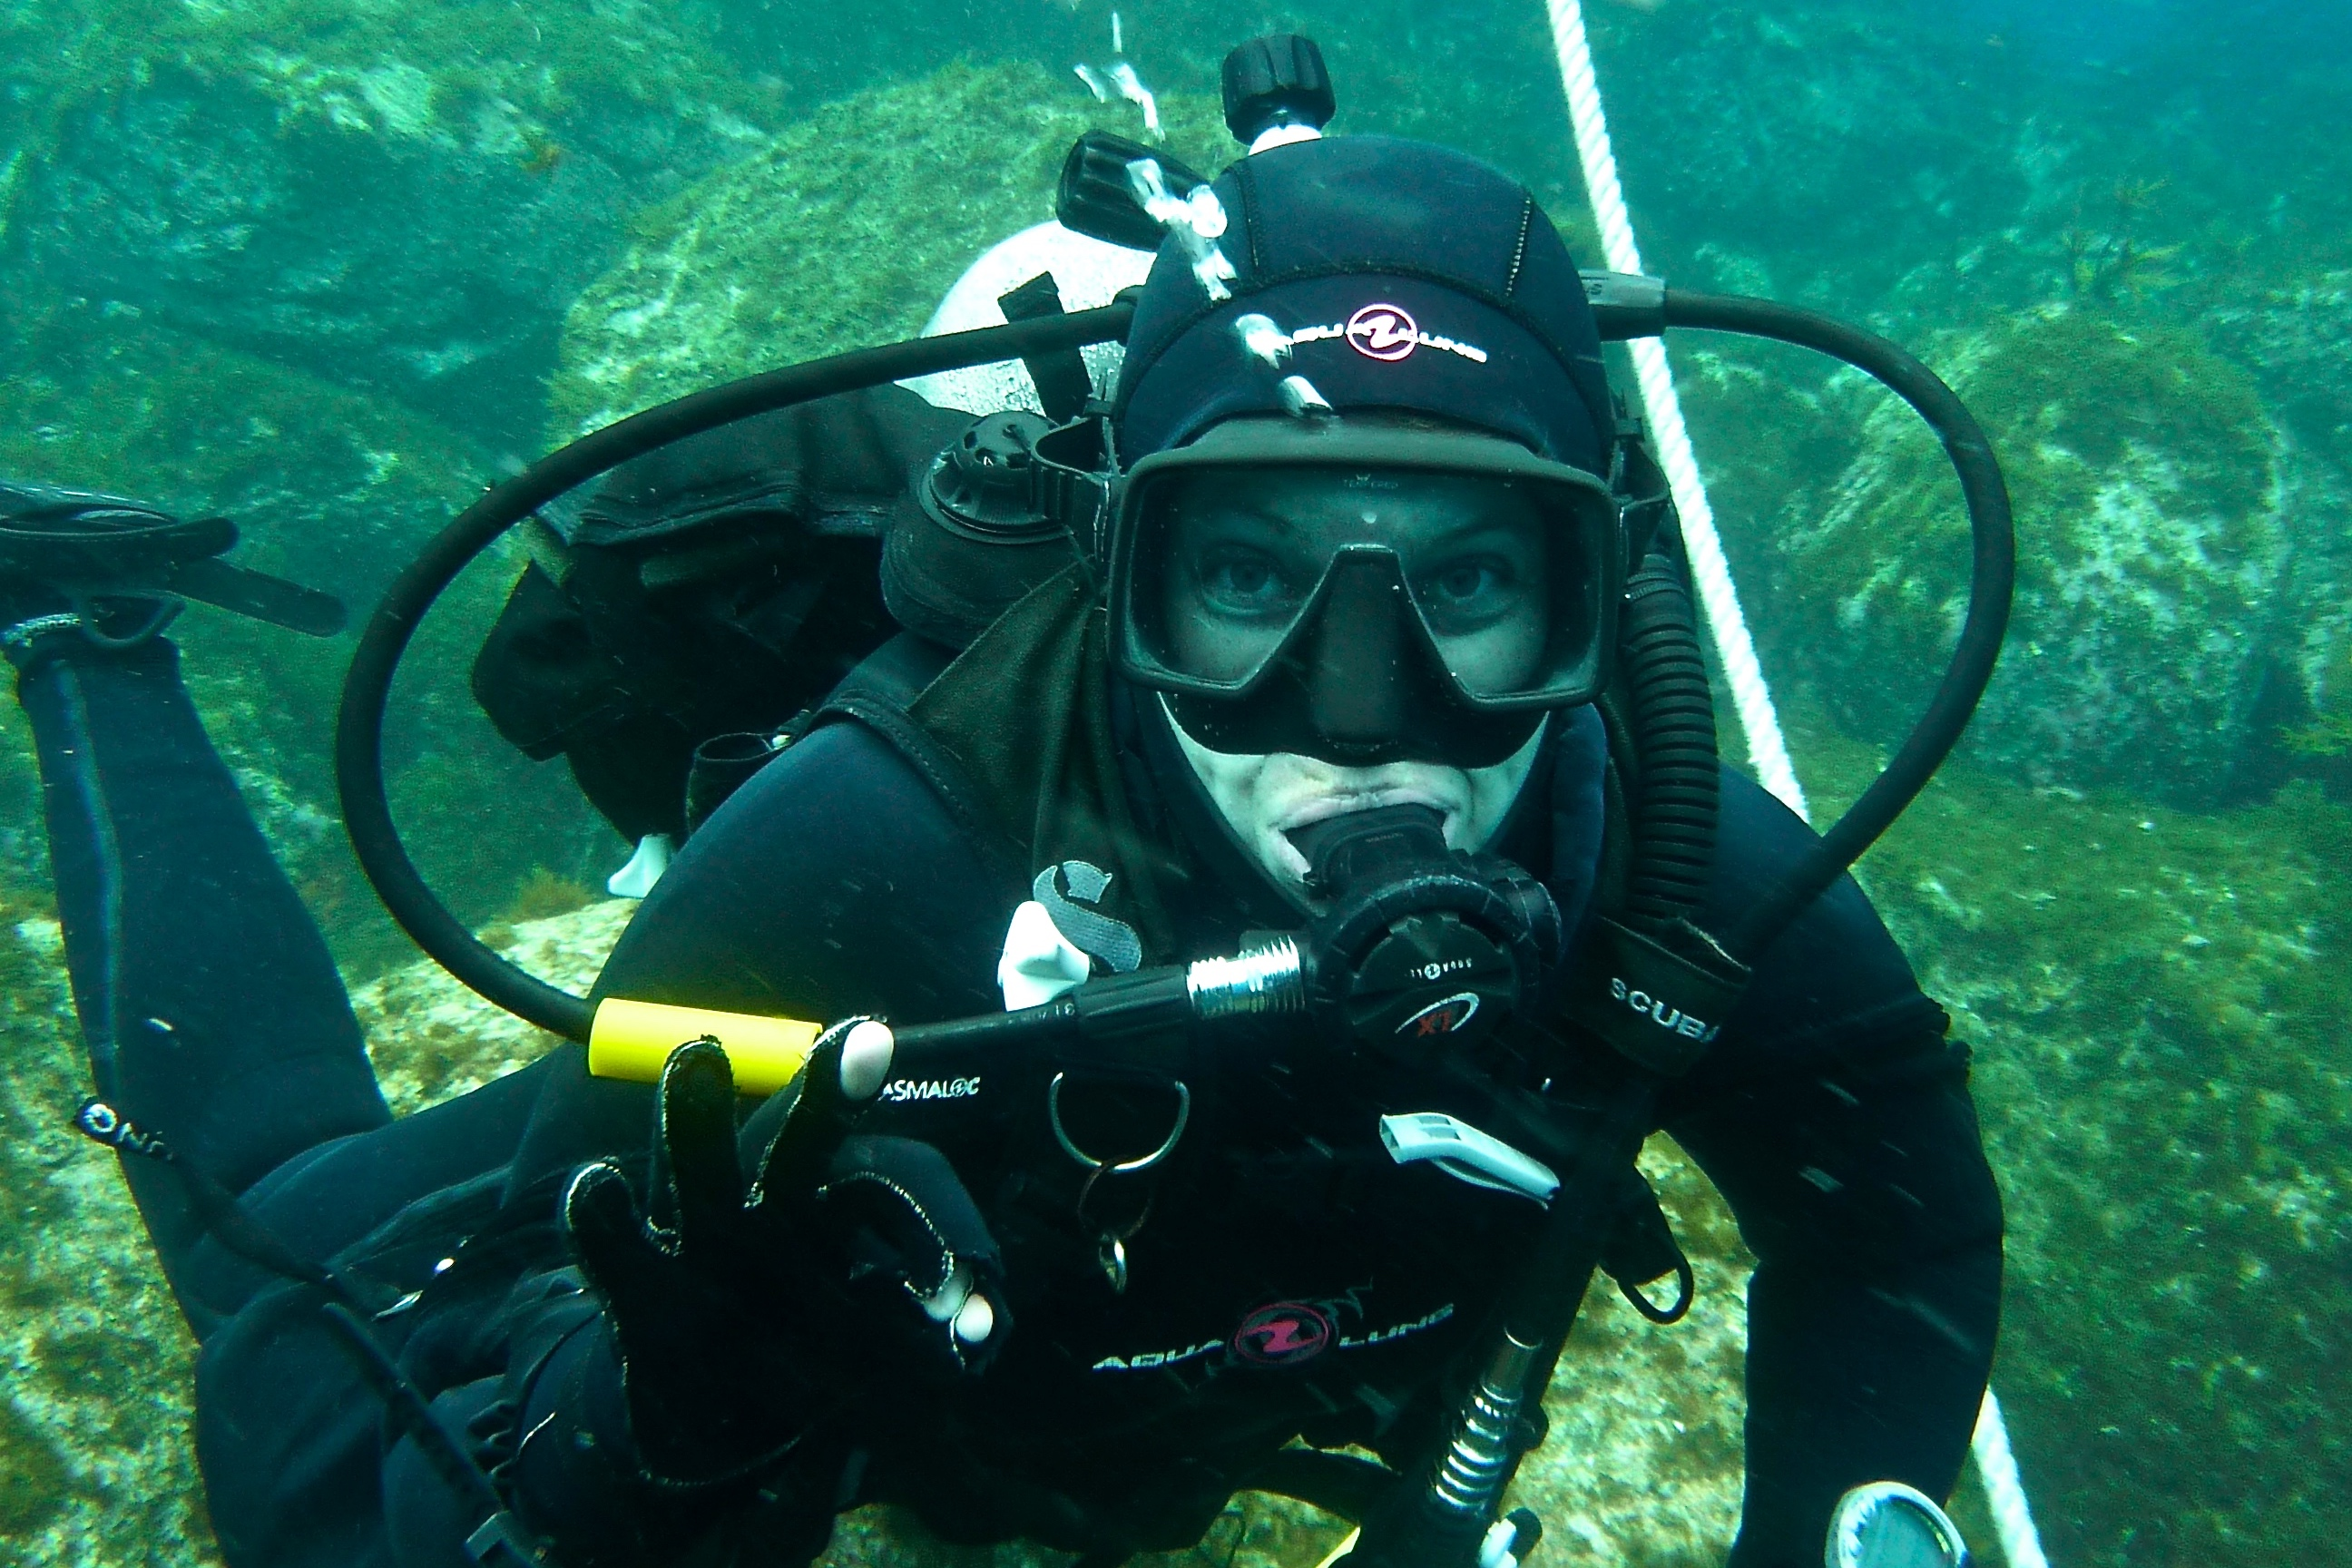 Dive in! Dr. Hofmeister searches the waters for Octopuses.